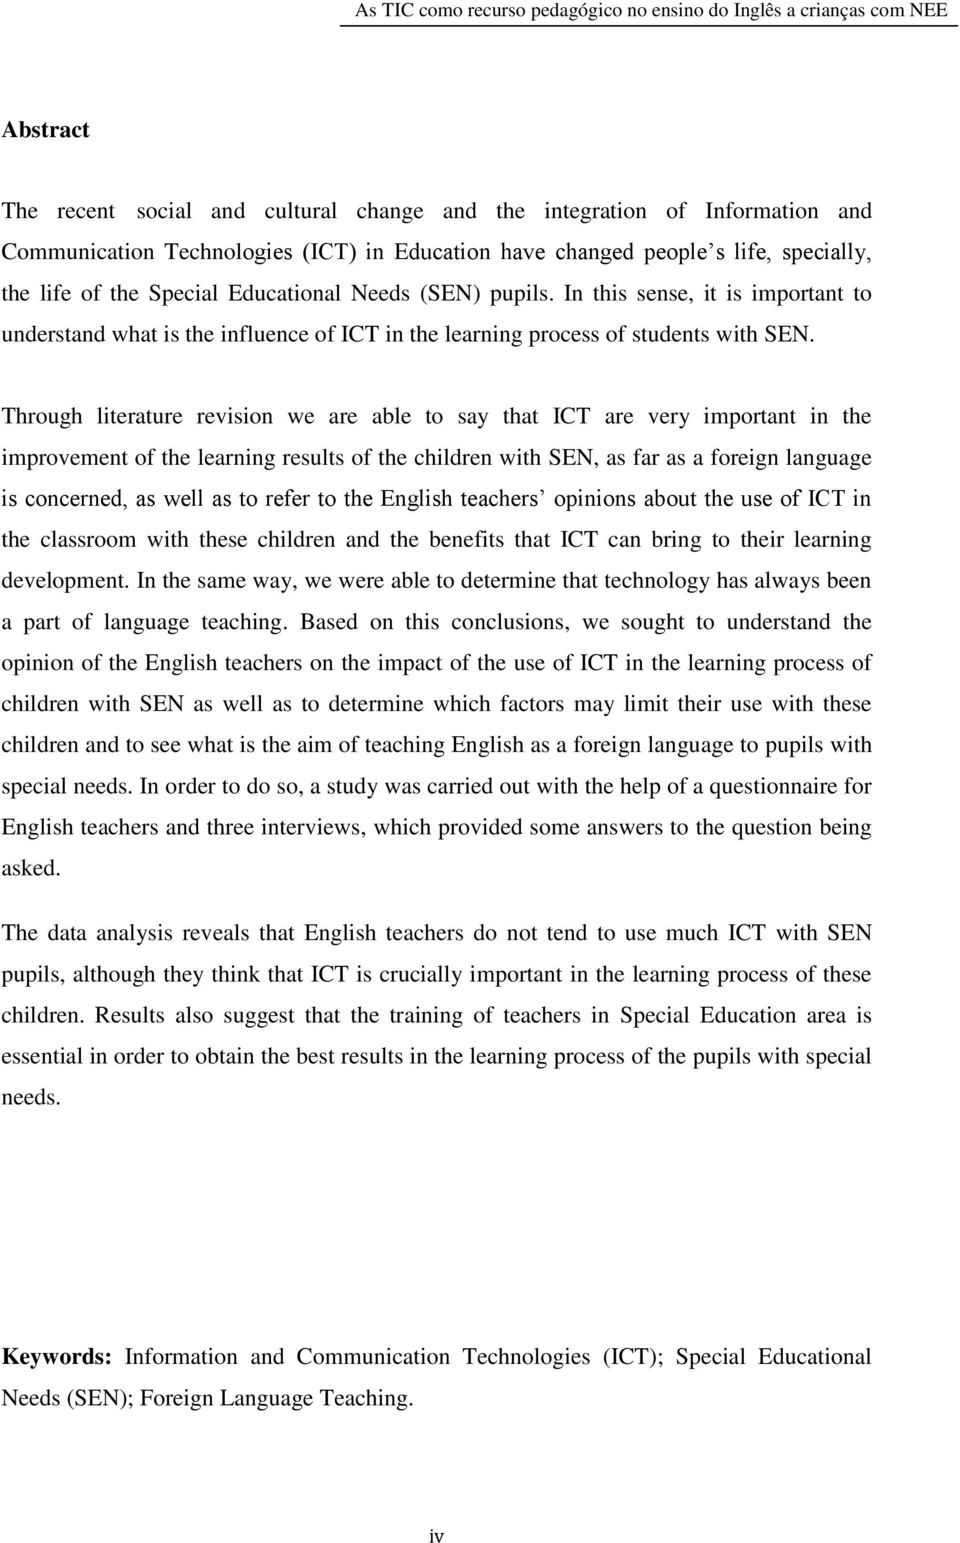 Through literature revision we are able to say that ICT are very important in the improvement of the learning results of the children with SEN, as far as a foreign language is concerned, as well as